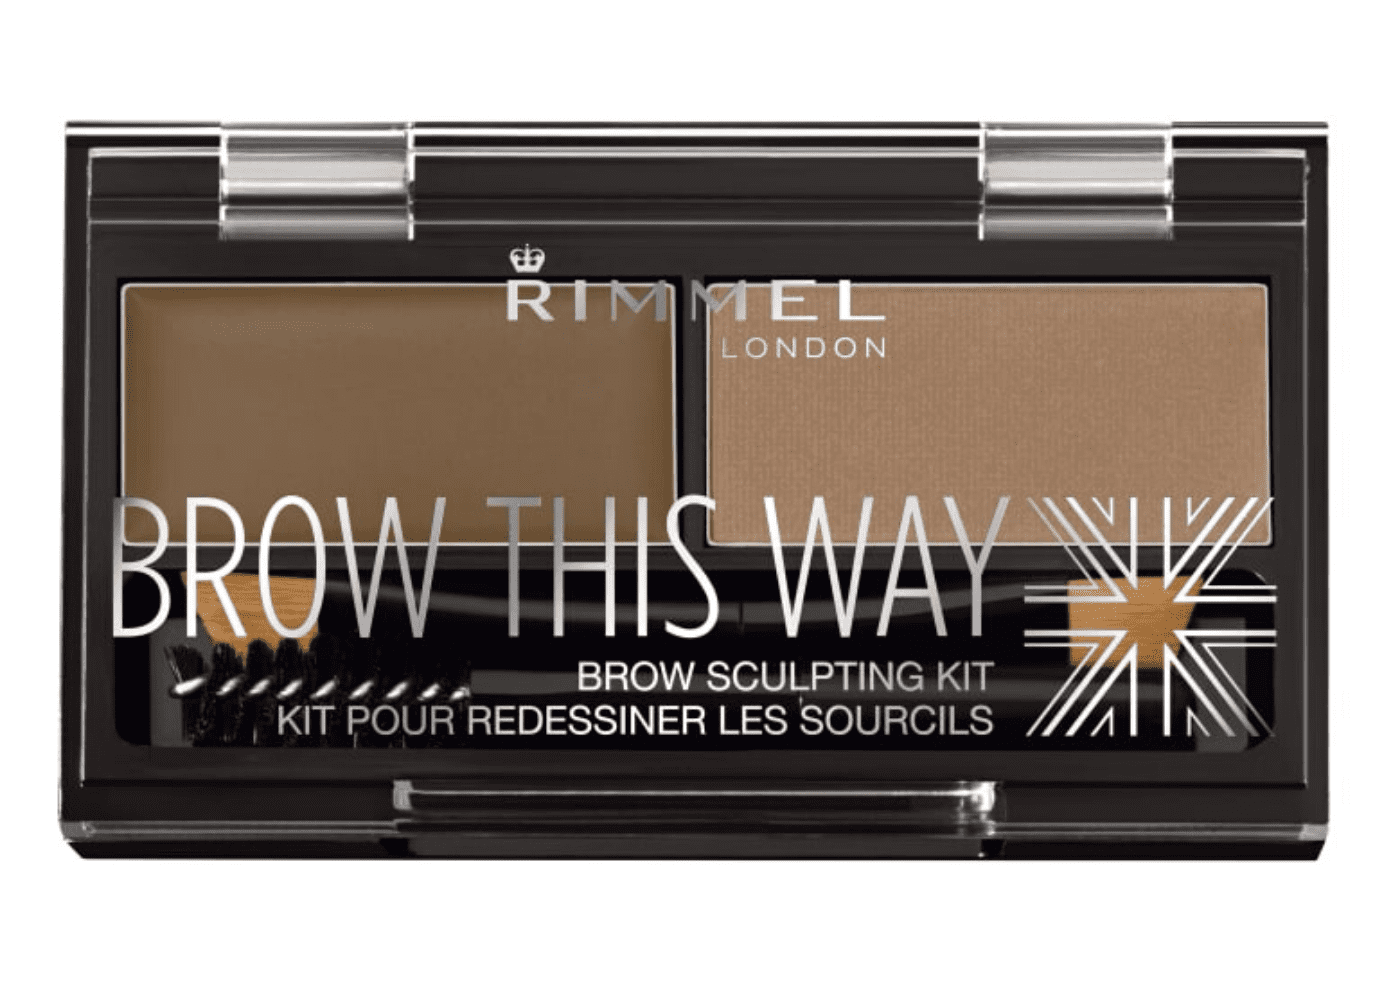 Rimmel Brow This Way Brow Sculpting Kit | March 2020 beauty review | Honeycombers Singapore